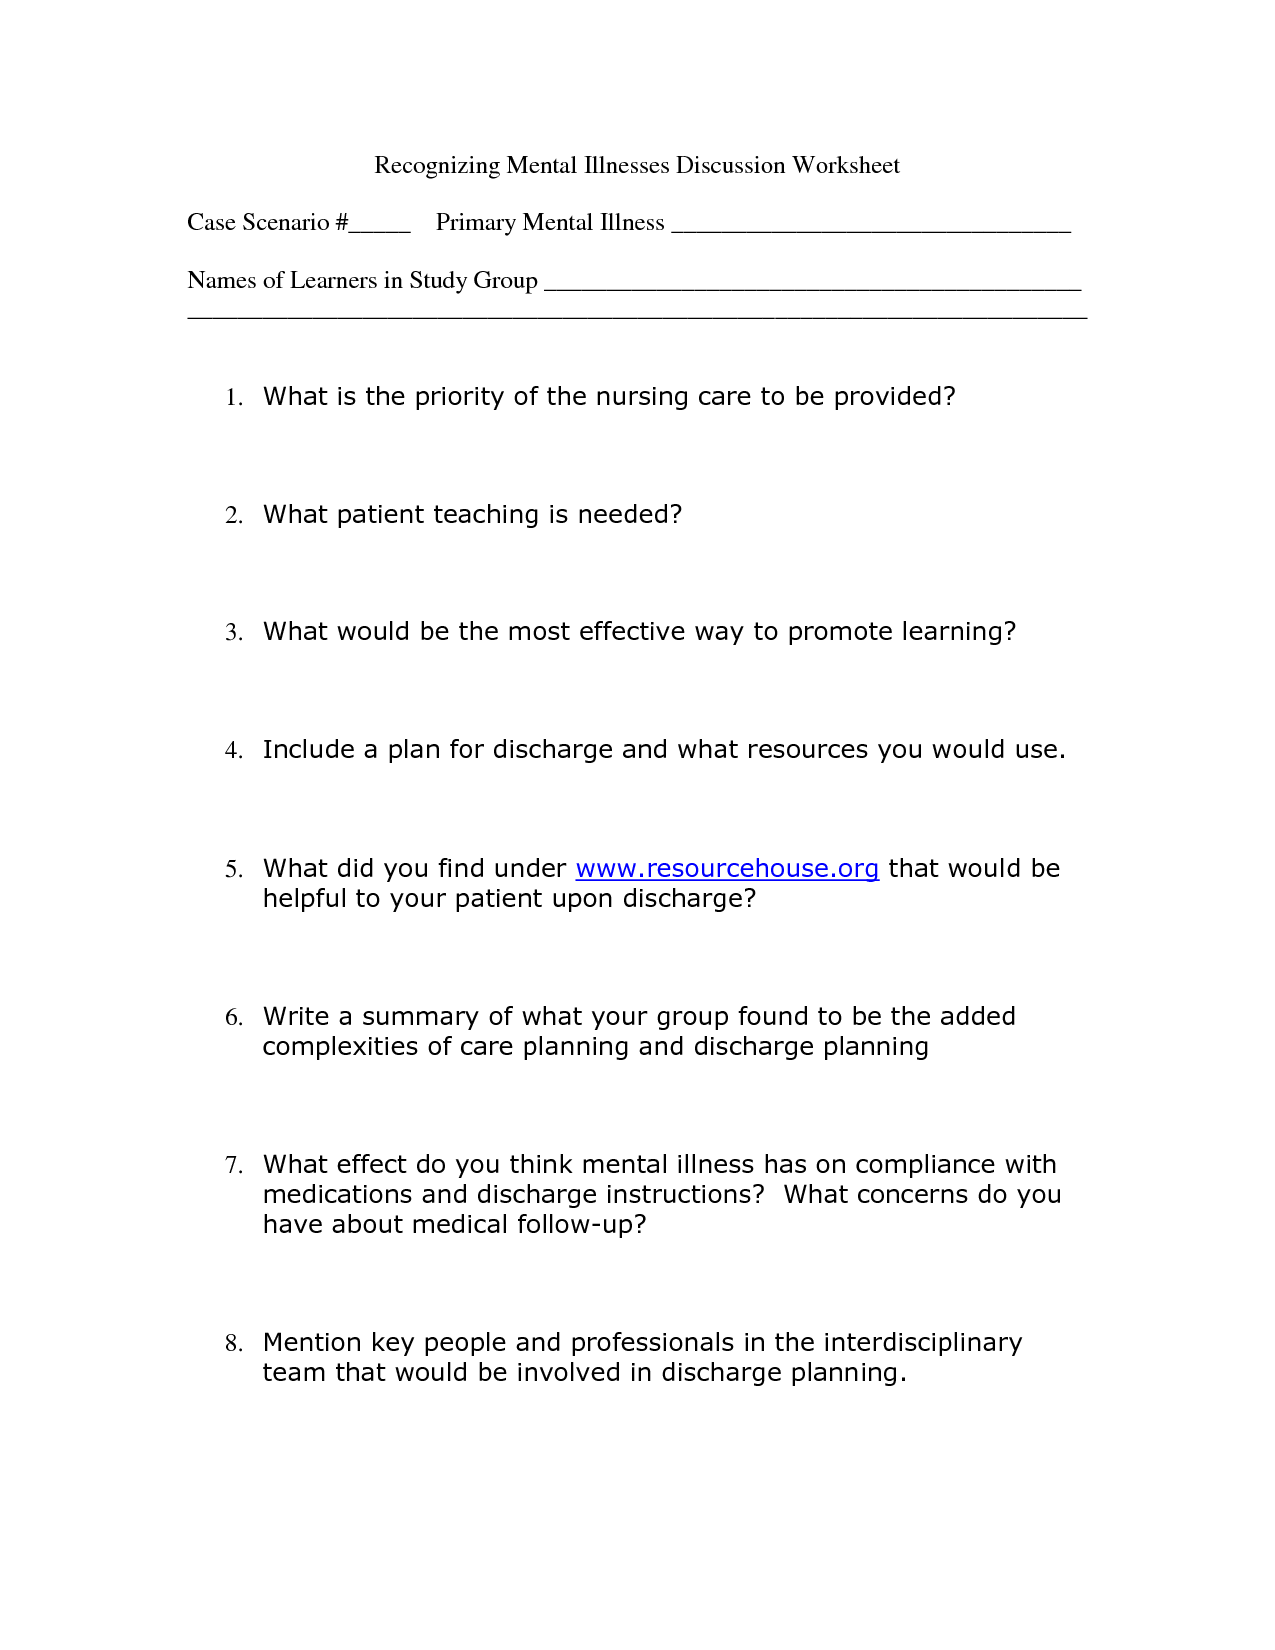 17 Best Images of Healthy Activity Worksheets For Adults ...